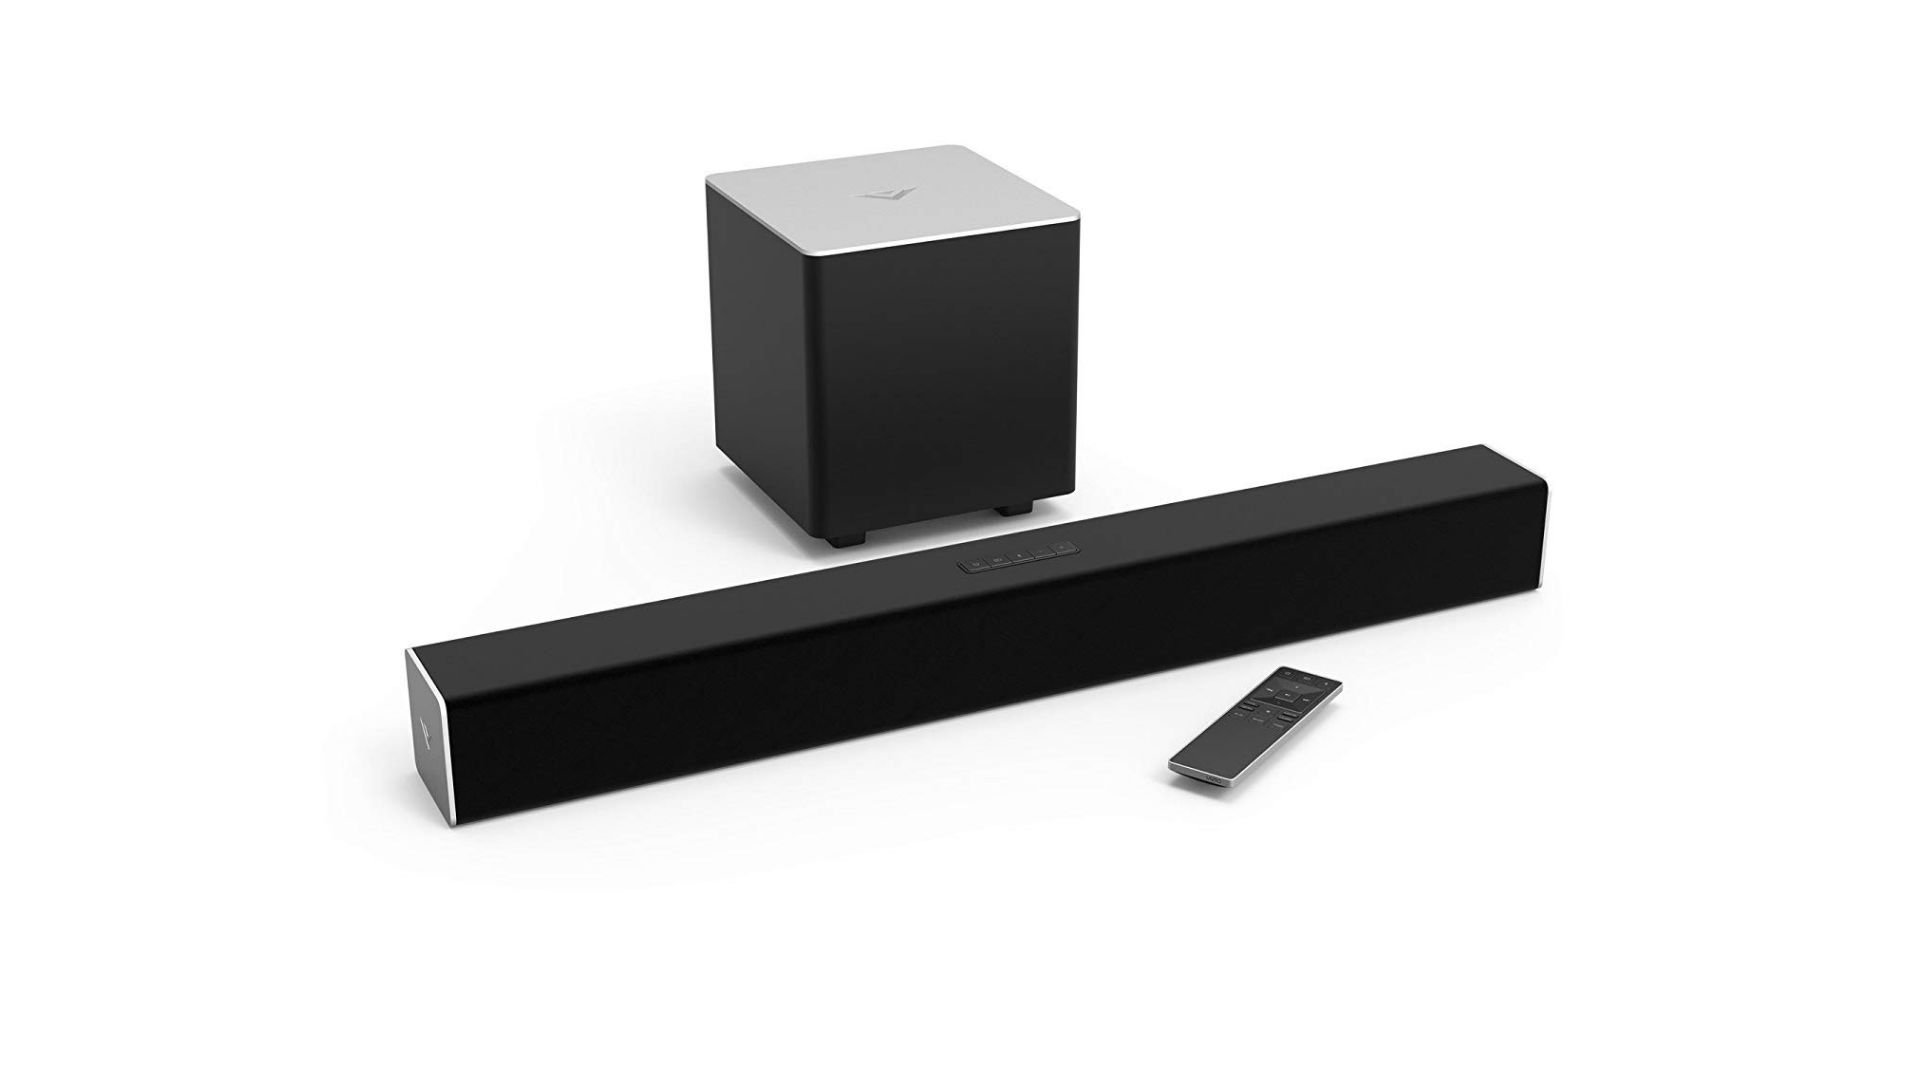 "Best Soundbar under 200 - VIZIO SB3621n-F8M 36"" 2.1 Channel"